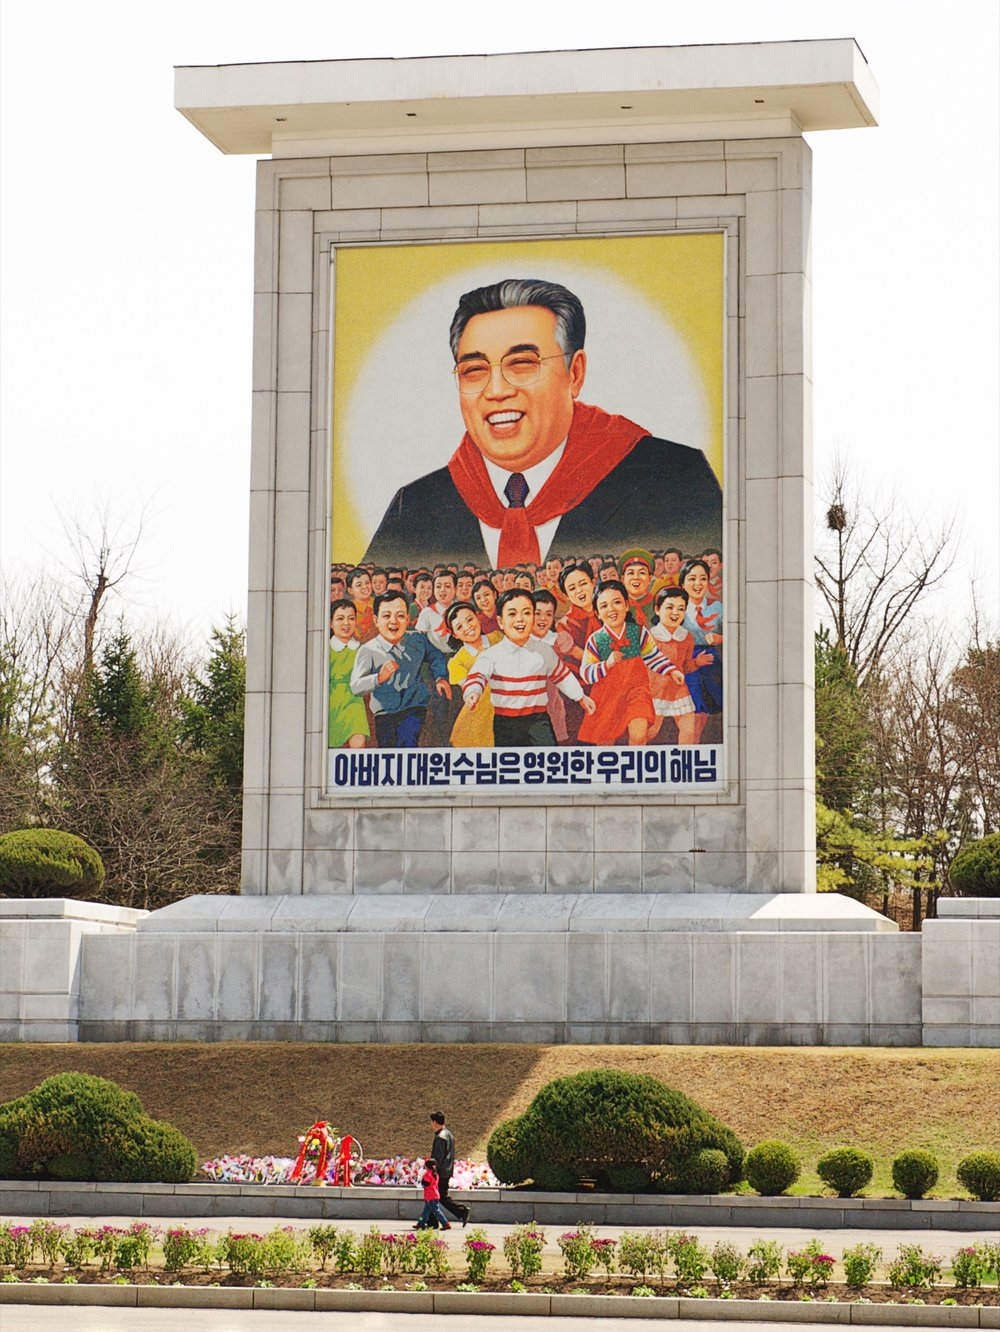 Public Sidewalk, North Korea Architecture of Propaganda - Wolf Nitch Photography